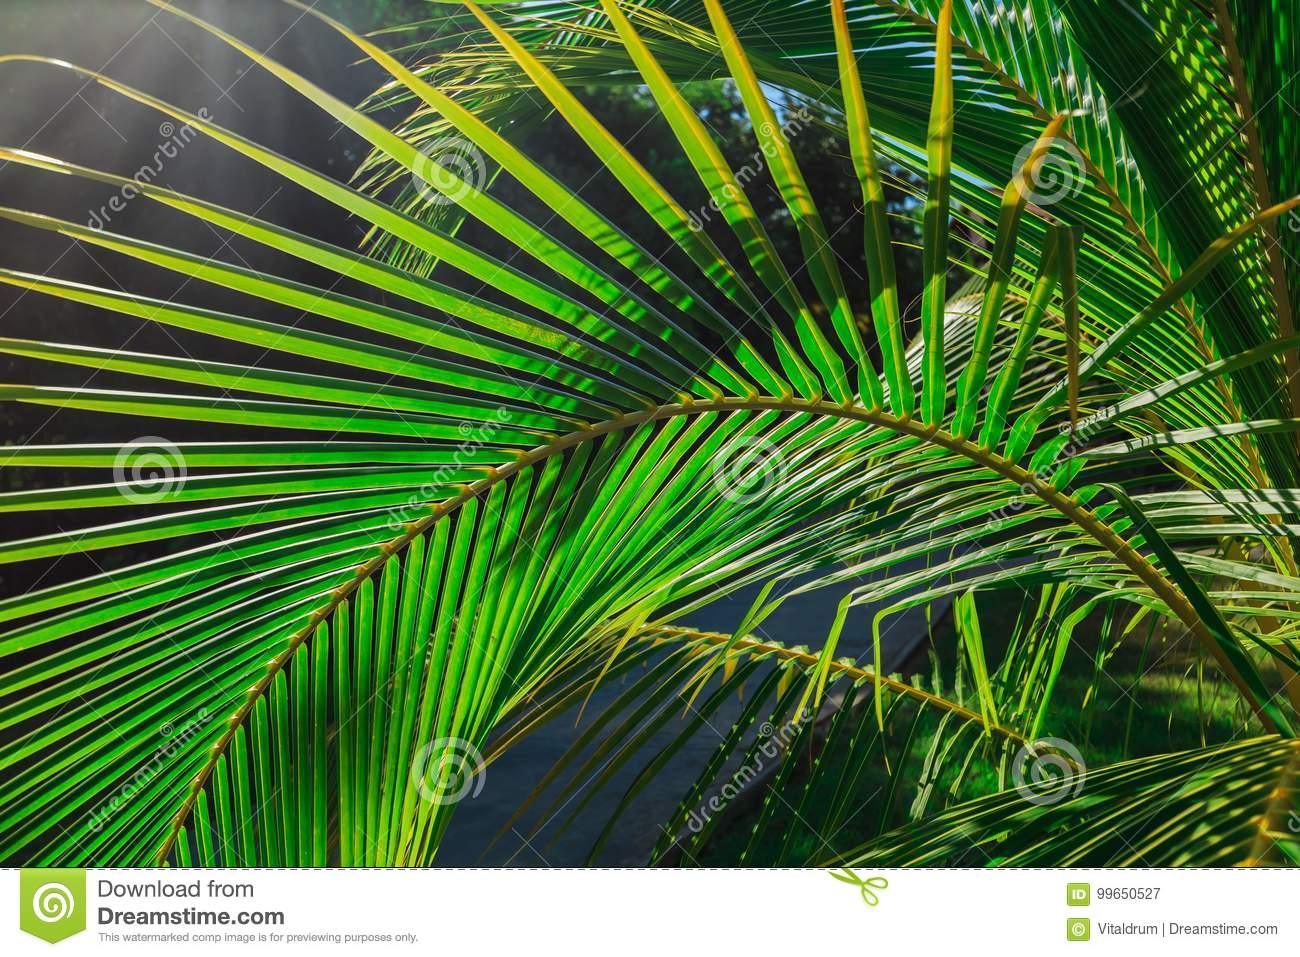 Download Amazing Closeup Detailed View Of A Natural Green Palm Leaf, Lit By Sun Rays In Tropical Garden Stock Image - Image of fabulous, beauty: 99650527